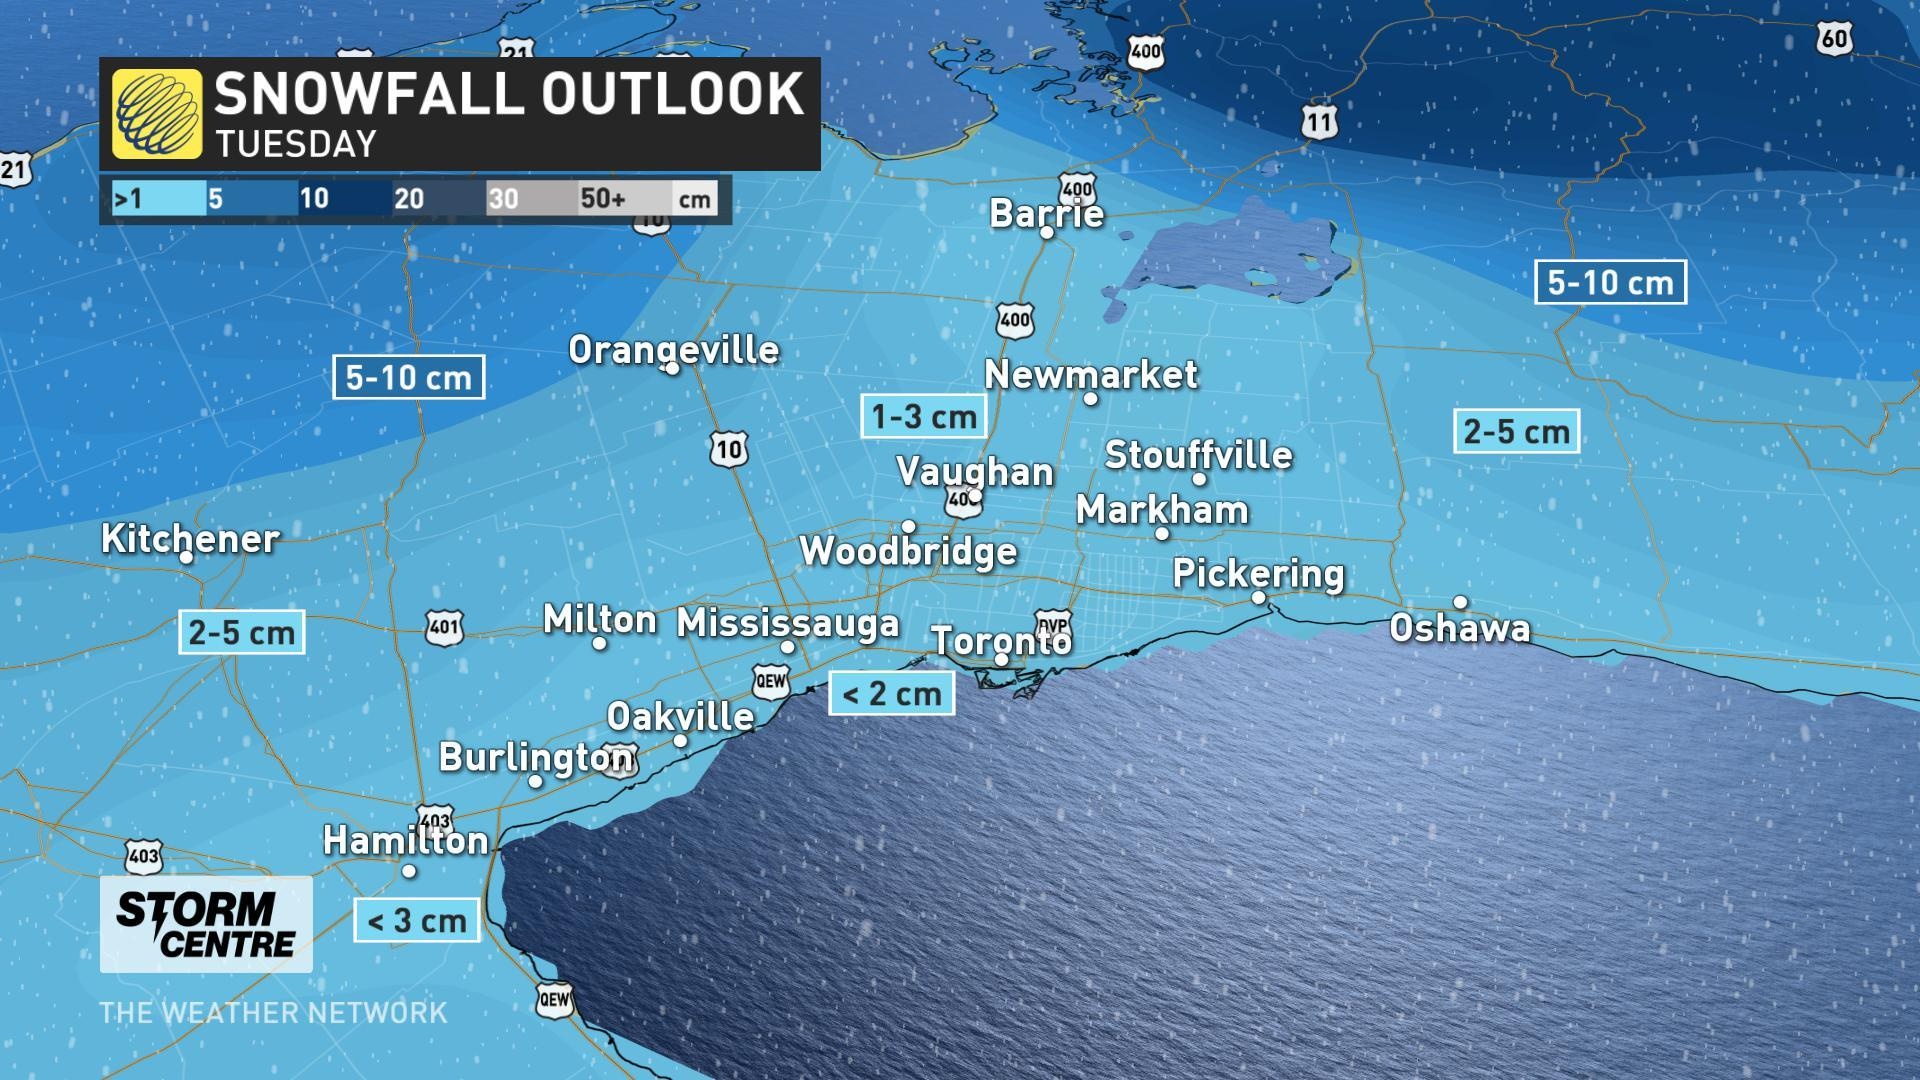 Snow squall watch has ended for Niagara